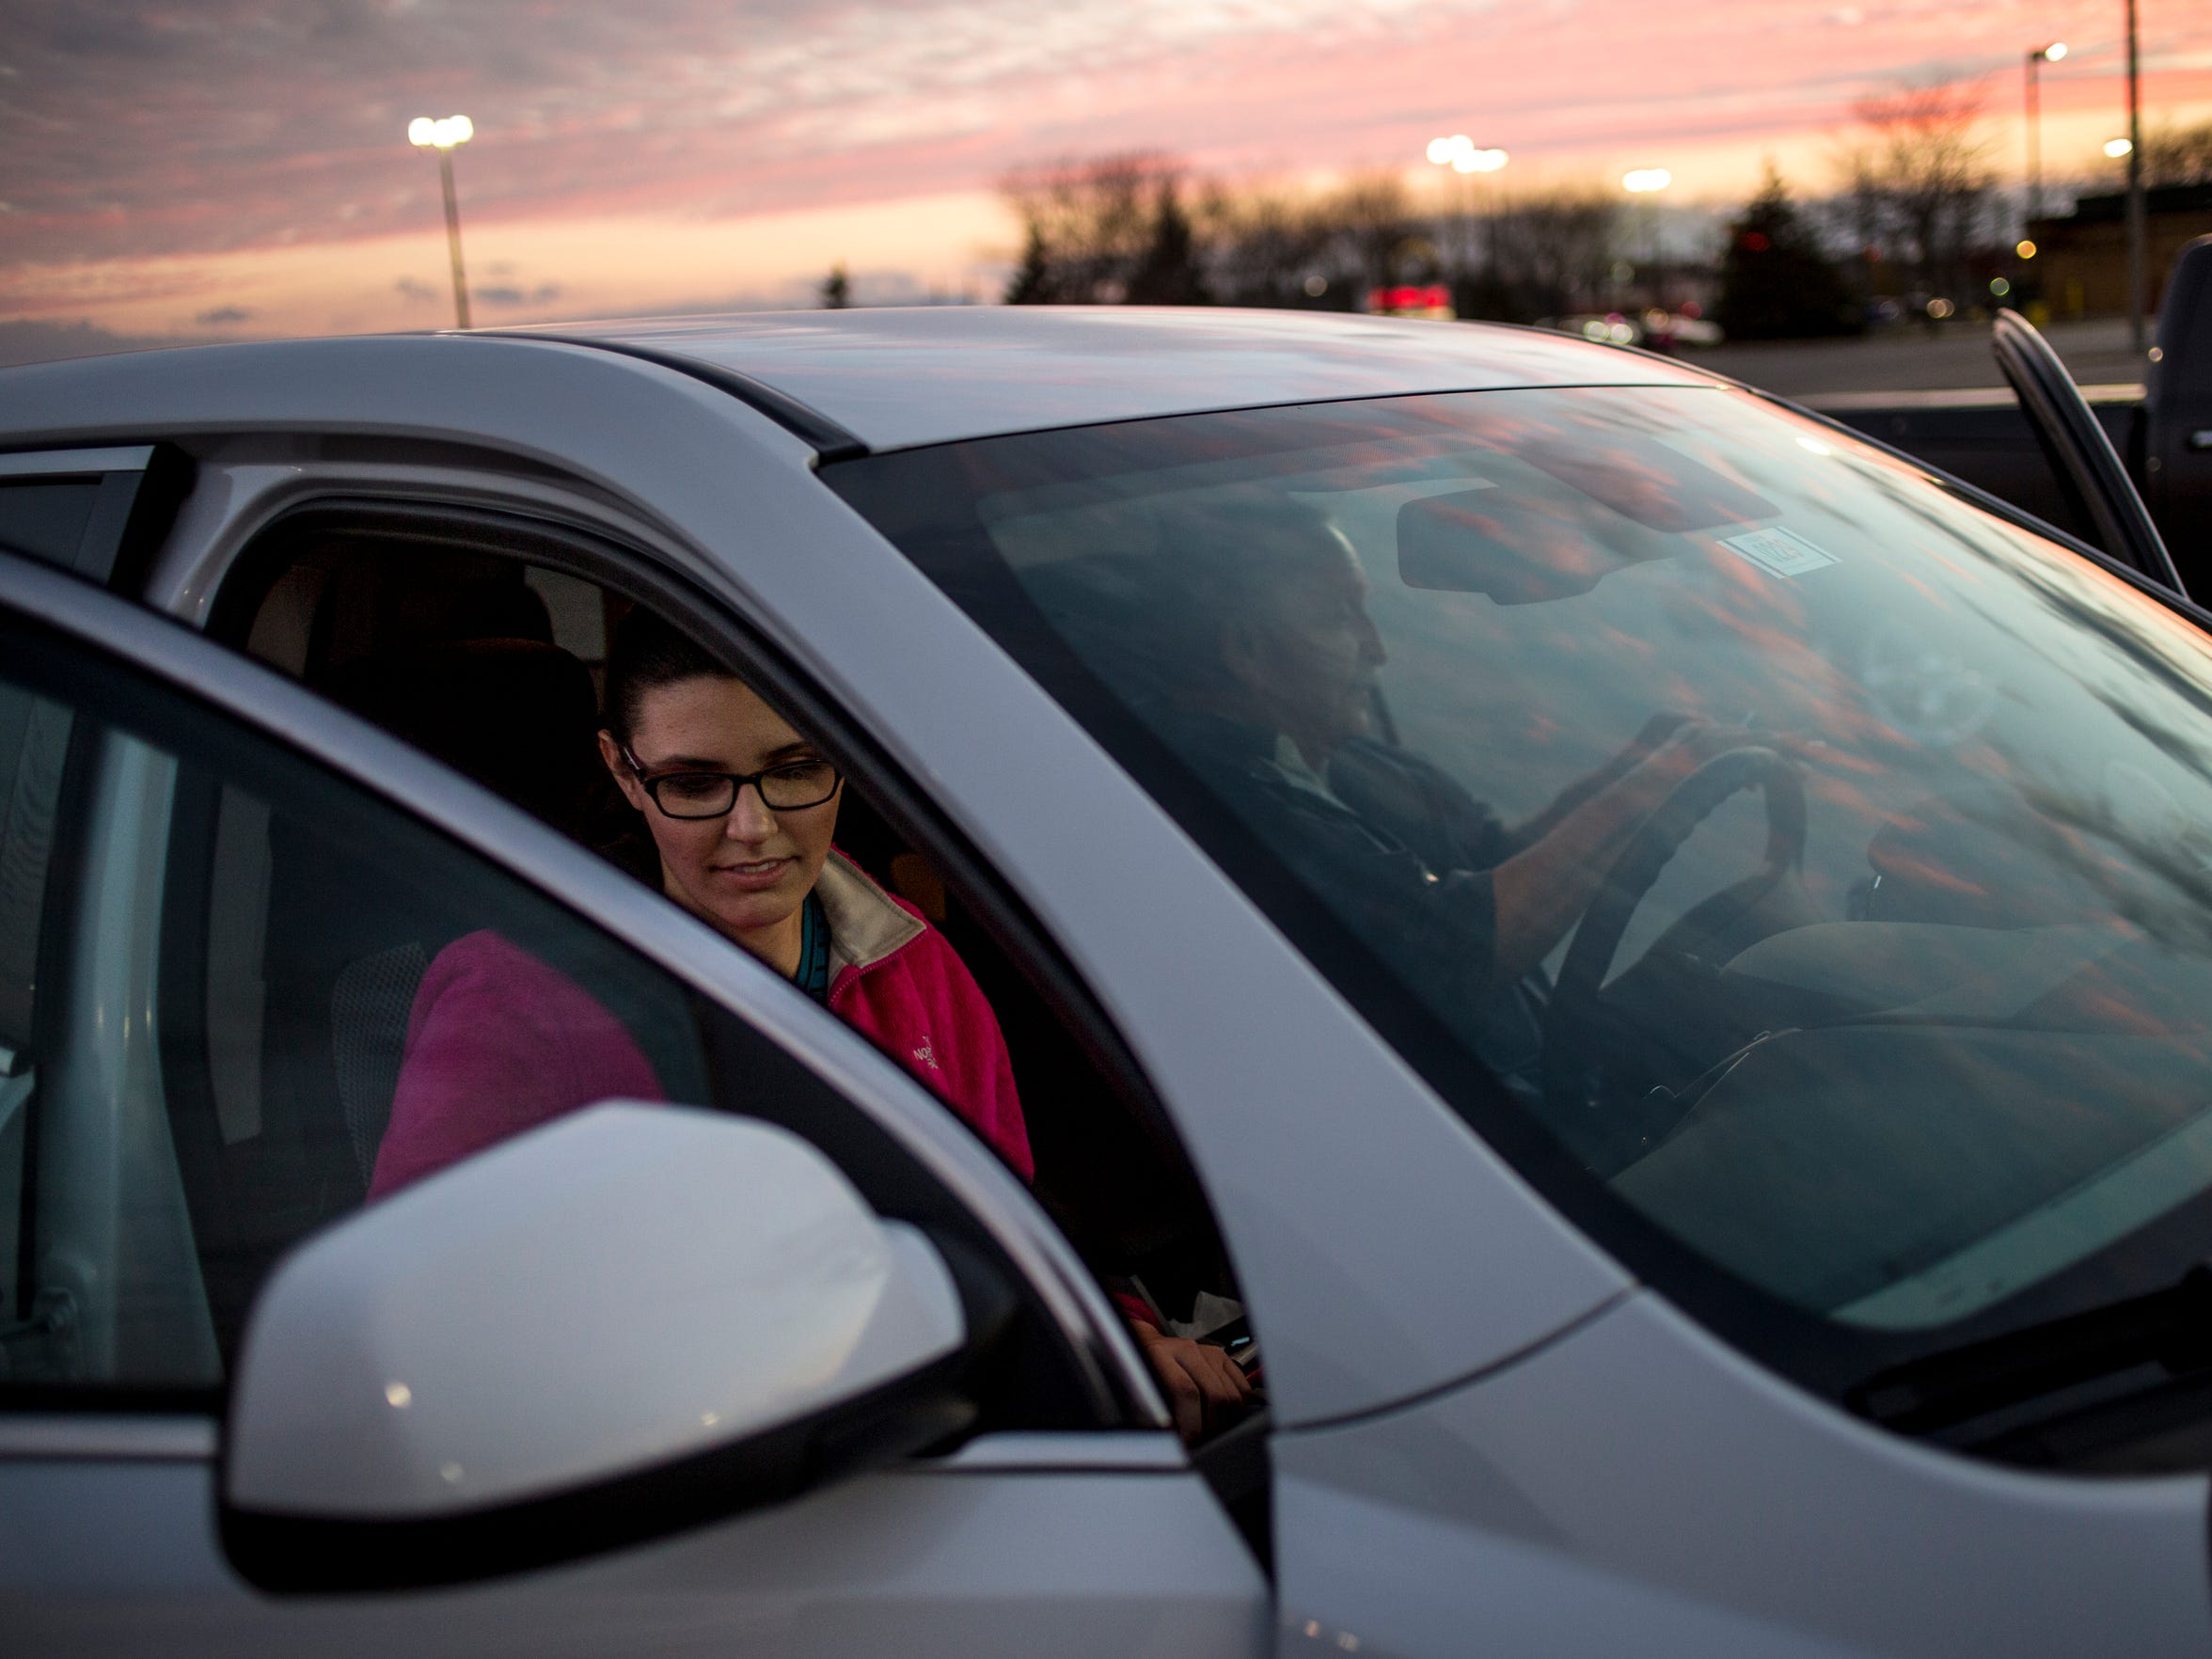 Alexandra Allers, 16, gets out of a vehicle with her